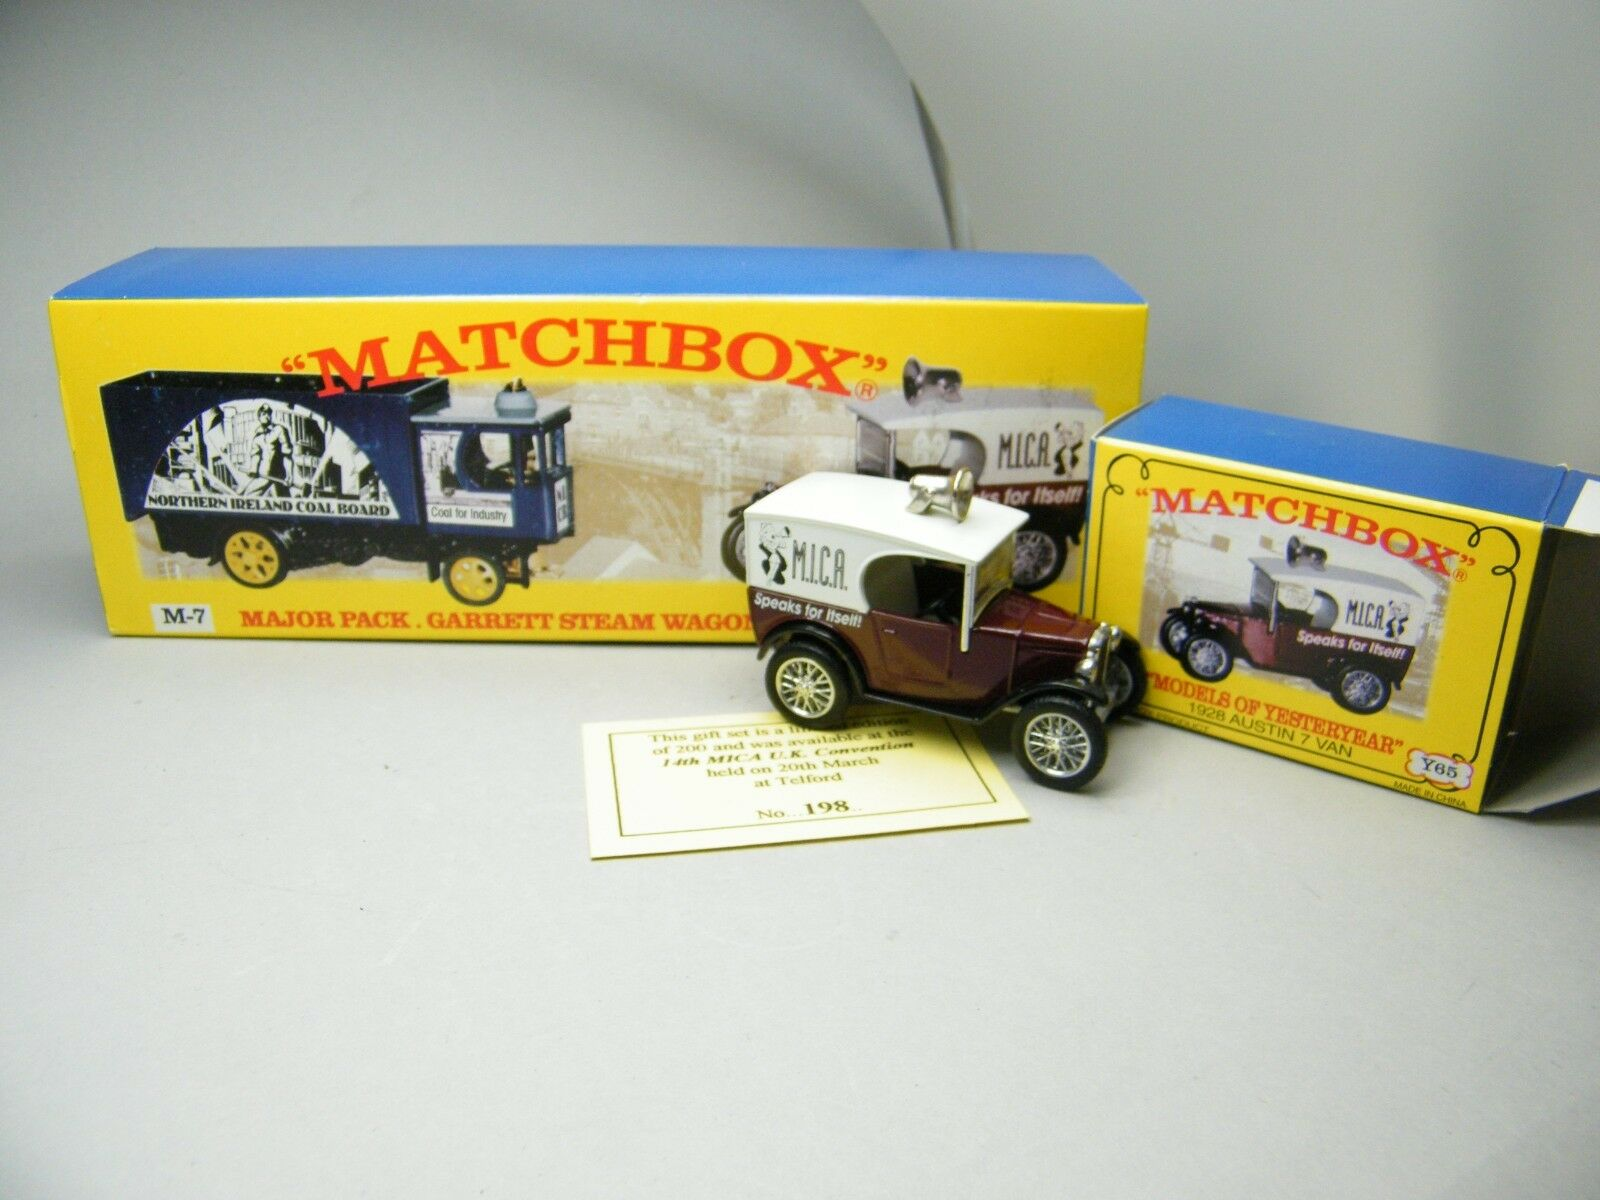 Matchbox MOY c2 y-65 Austin Seven from Mica m-7 Set 1 of 200 VERY RARE BOXED k17